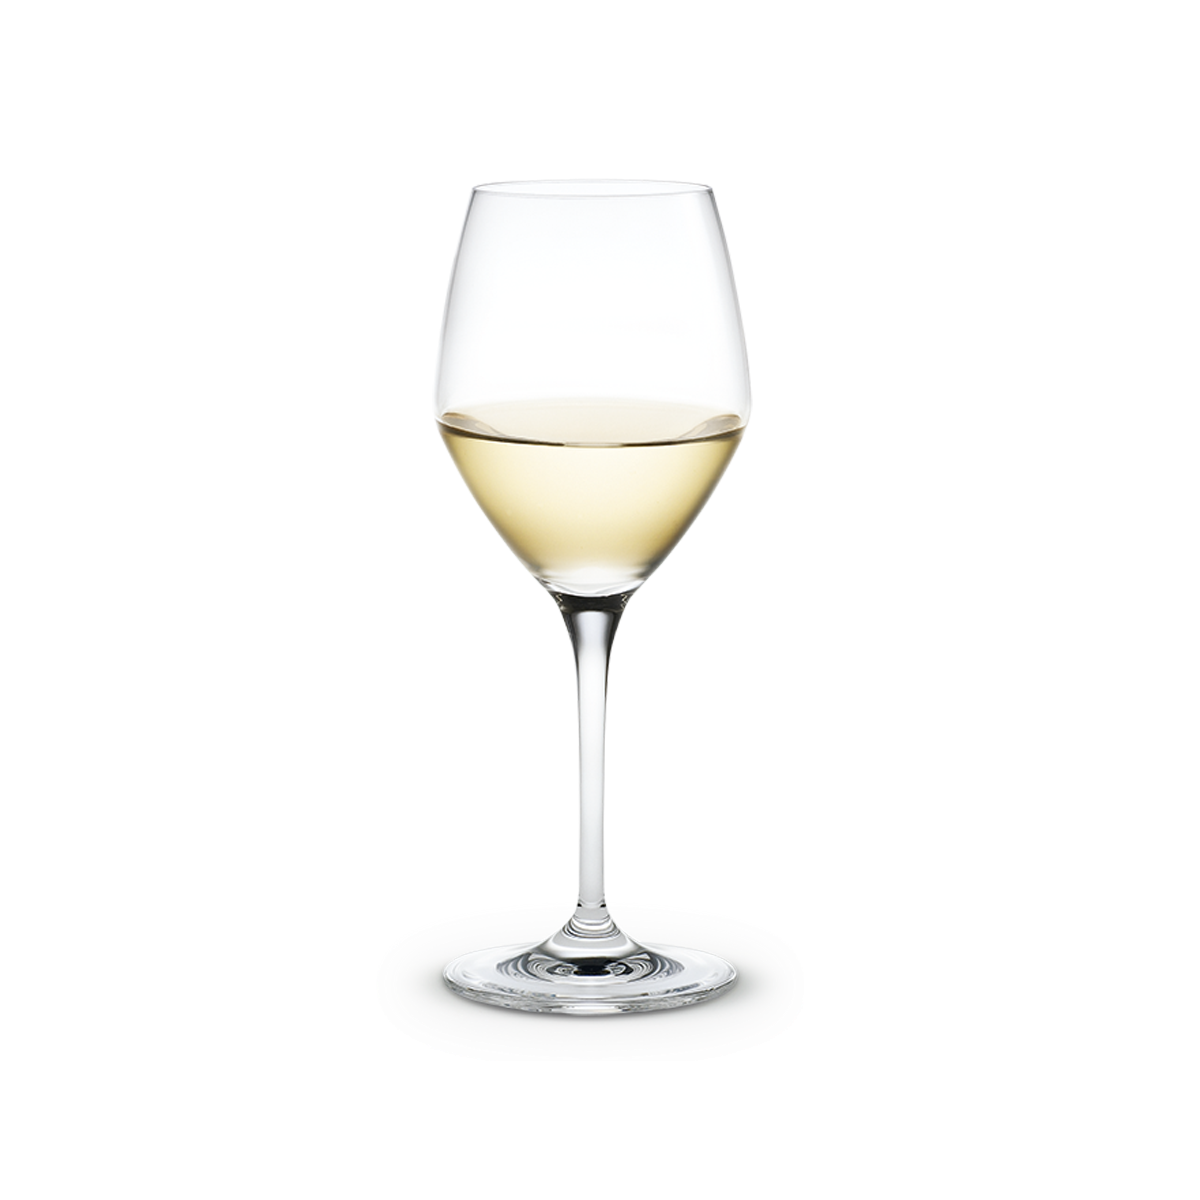 Perfection white wine glass 25 cl gift box with 6 glasses holmegaarddk - Beaker wine glasses ...